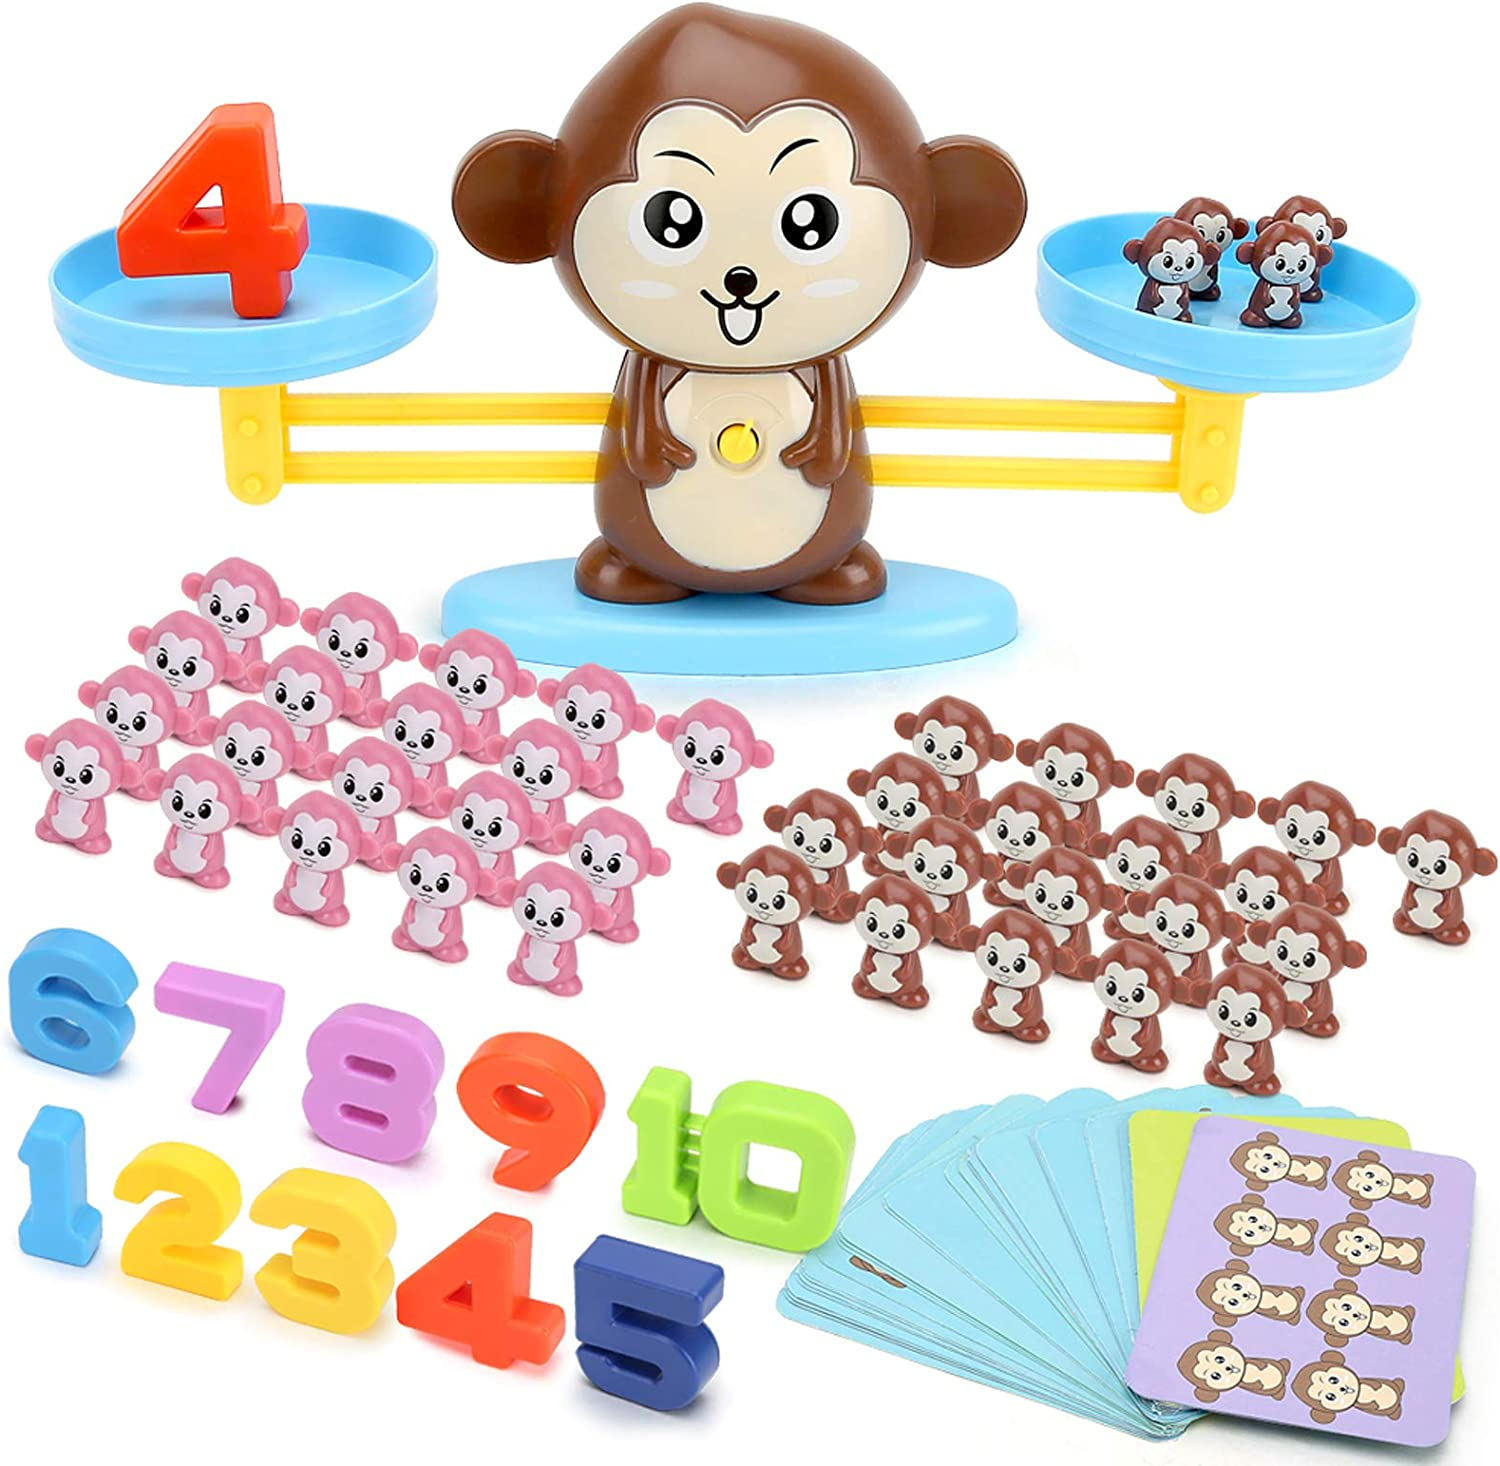 JIMI Counting Game Cow Balance Cool Math Game Educational Learning STEM Toys for Kids Girls /& Boys Gift Ages 3+